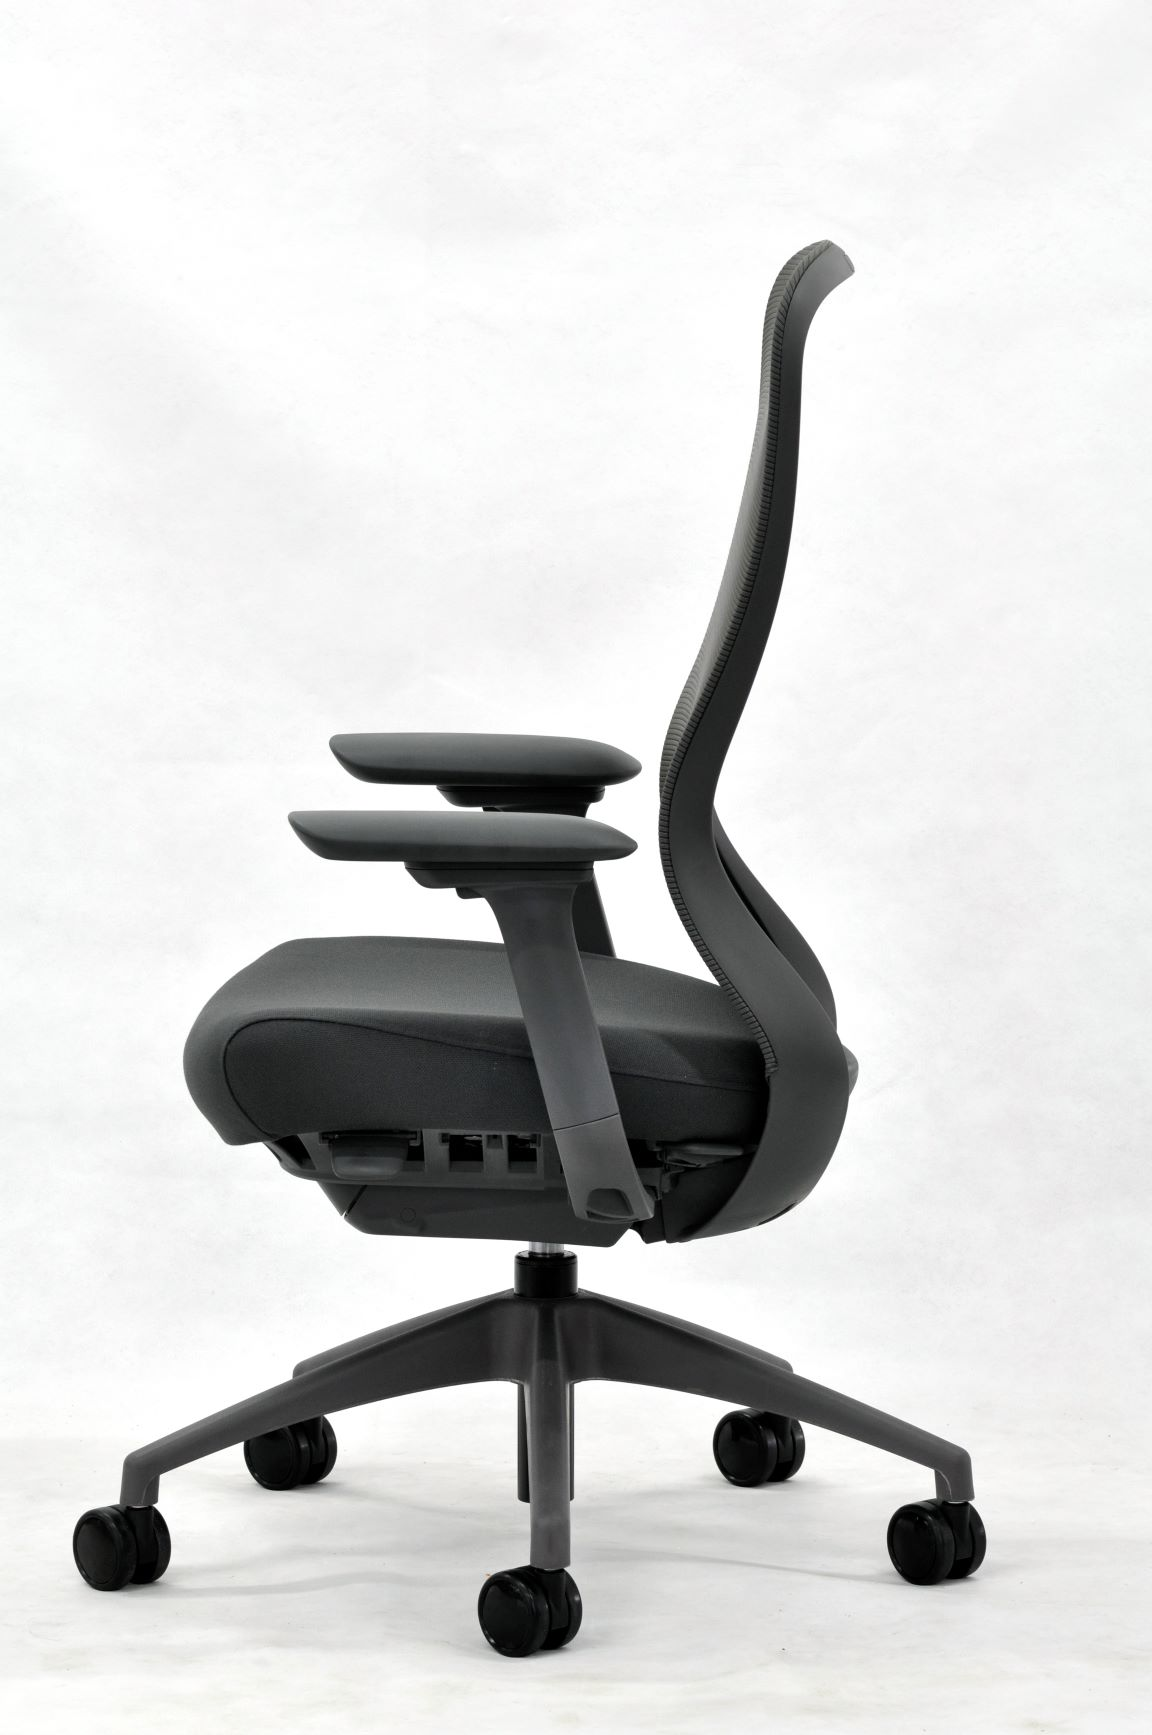 eurotech seating black exchange office chair side profile